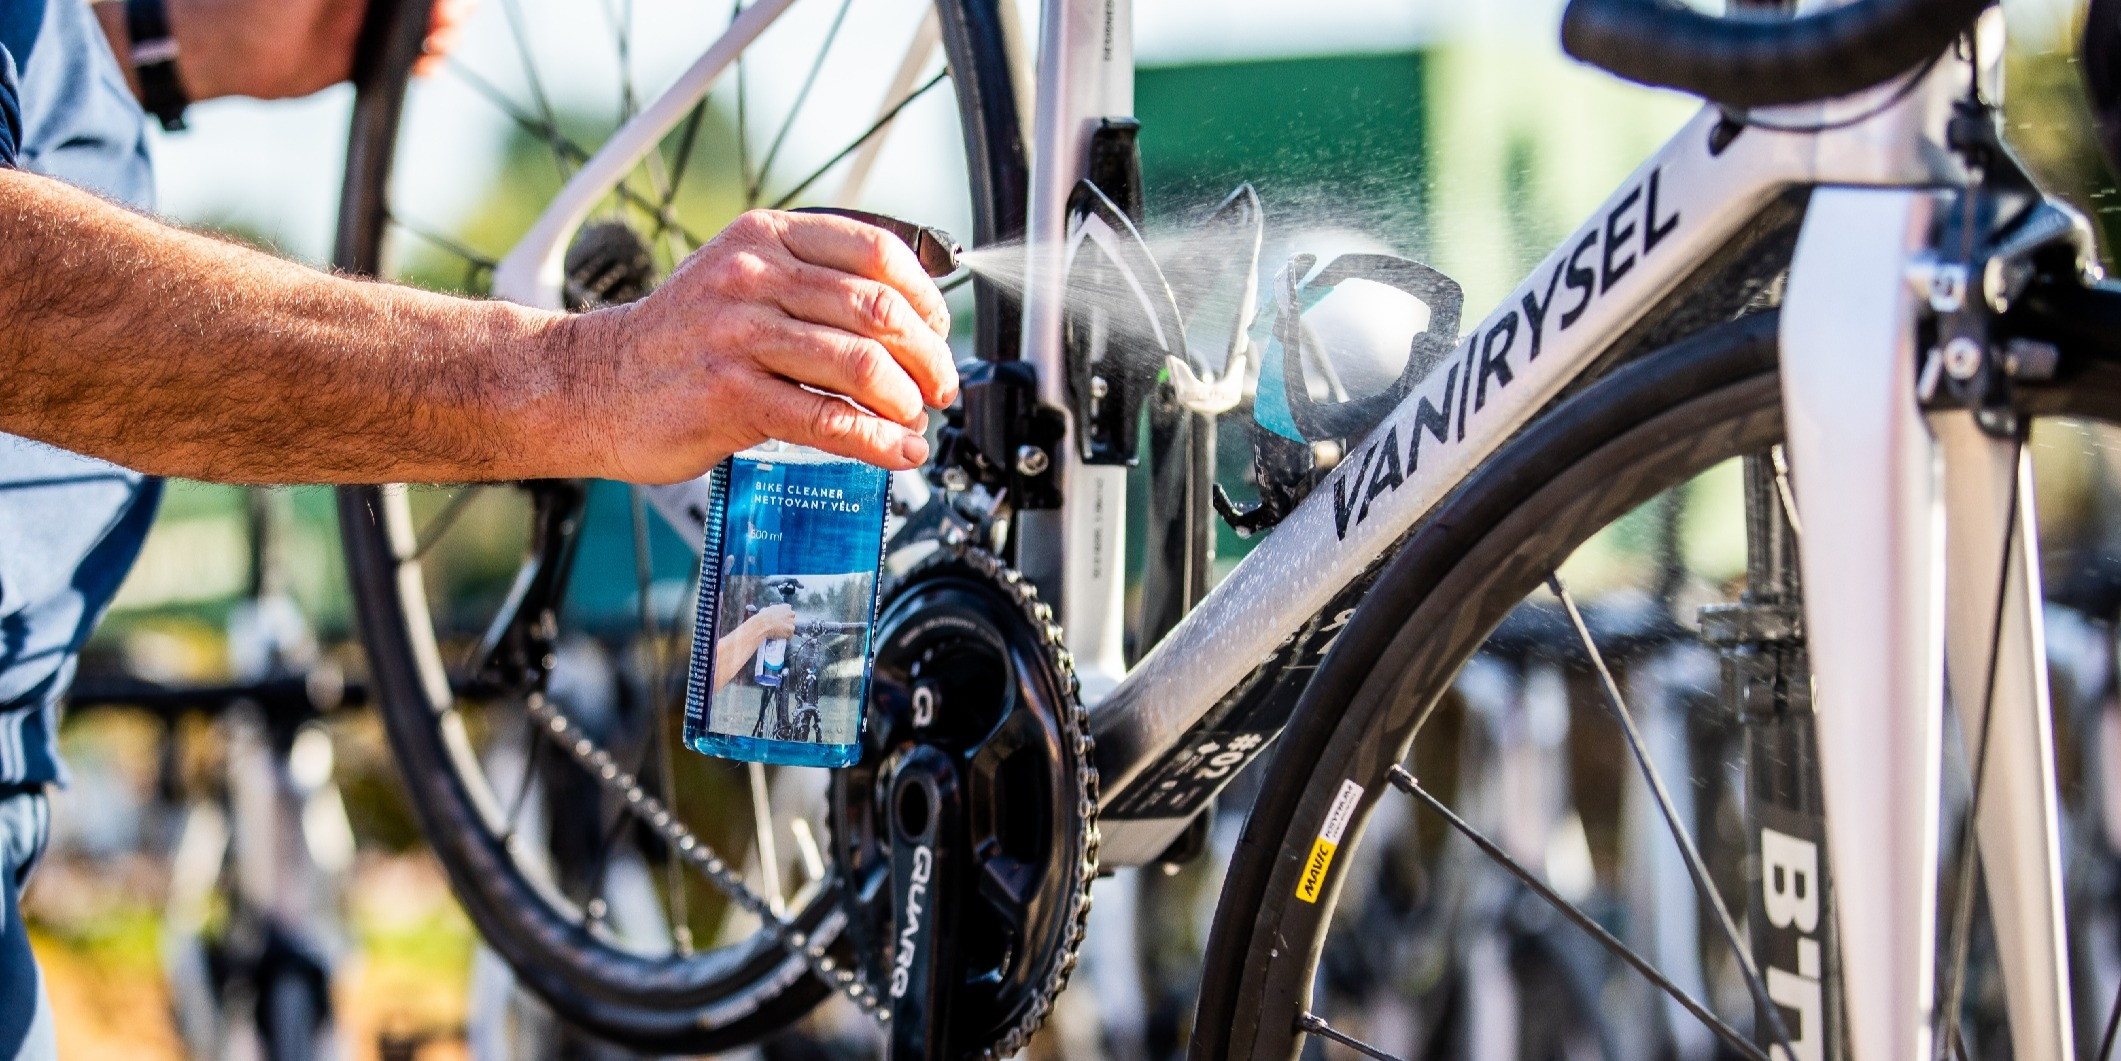 How To Clean Your Bike: Bike Cleaning For Beginners